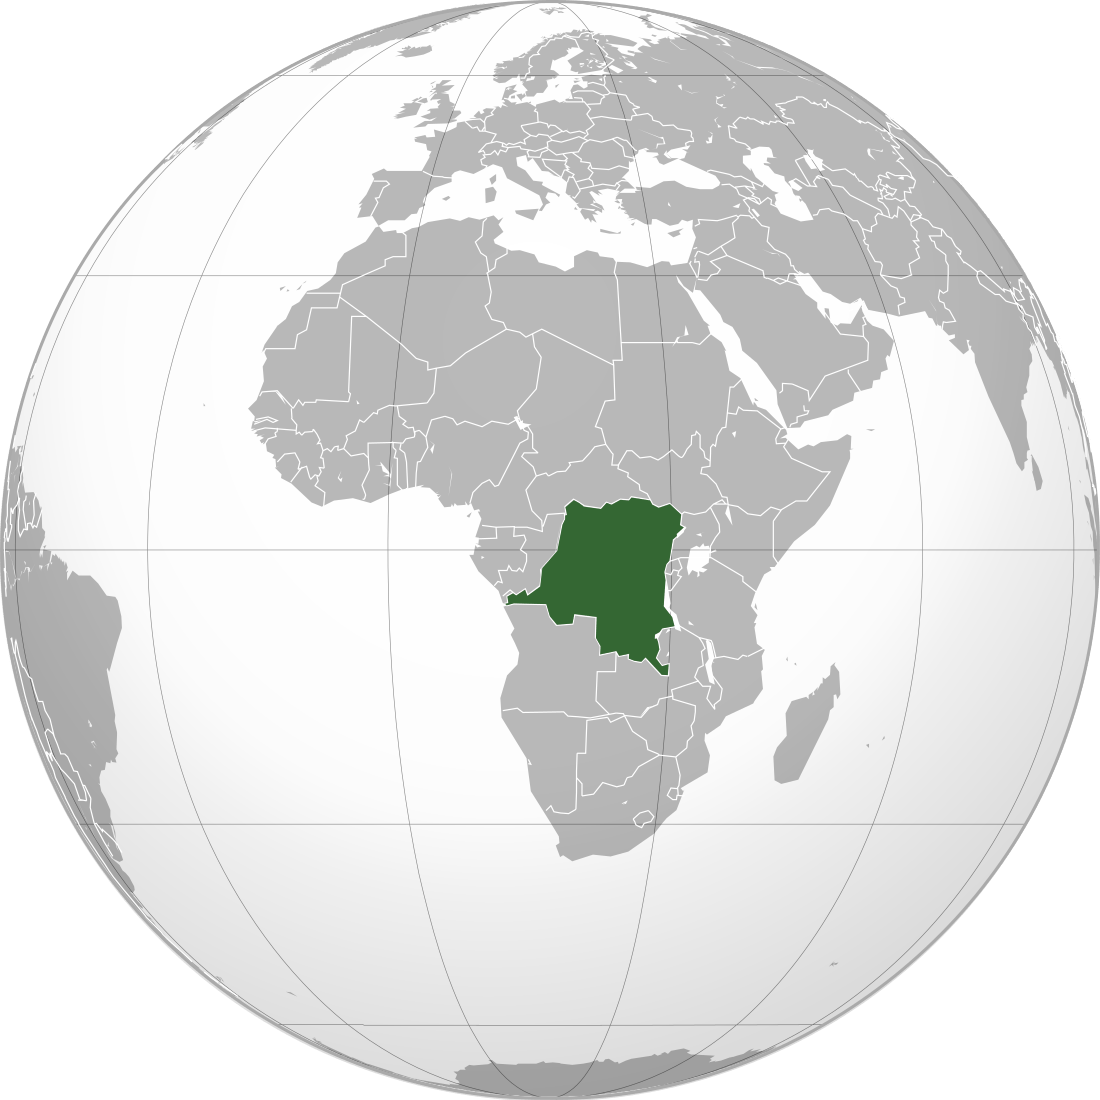 Map of world with Congo highlighted